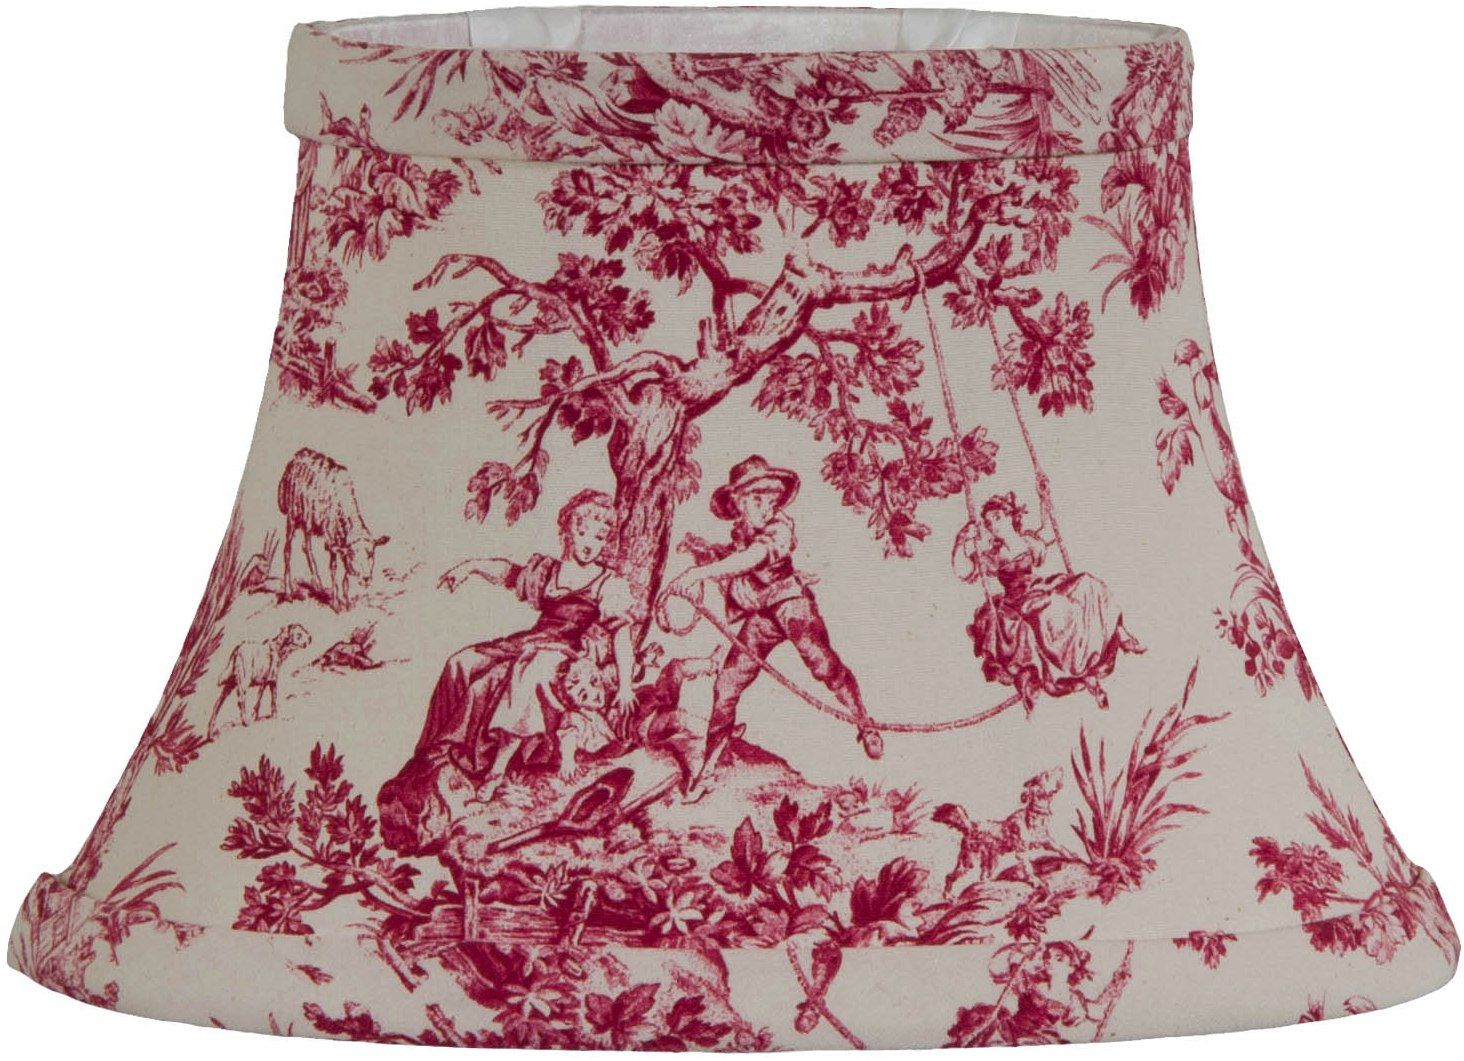 Oval Red Toile Lamp Shade Vintage Red Amp White Toile